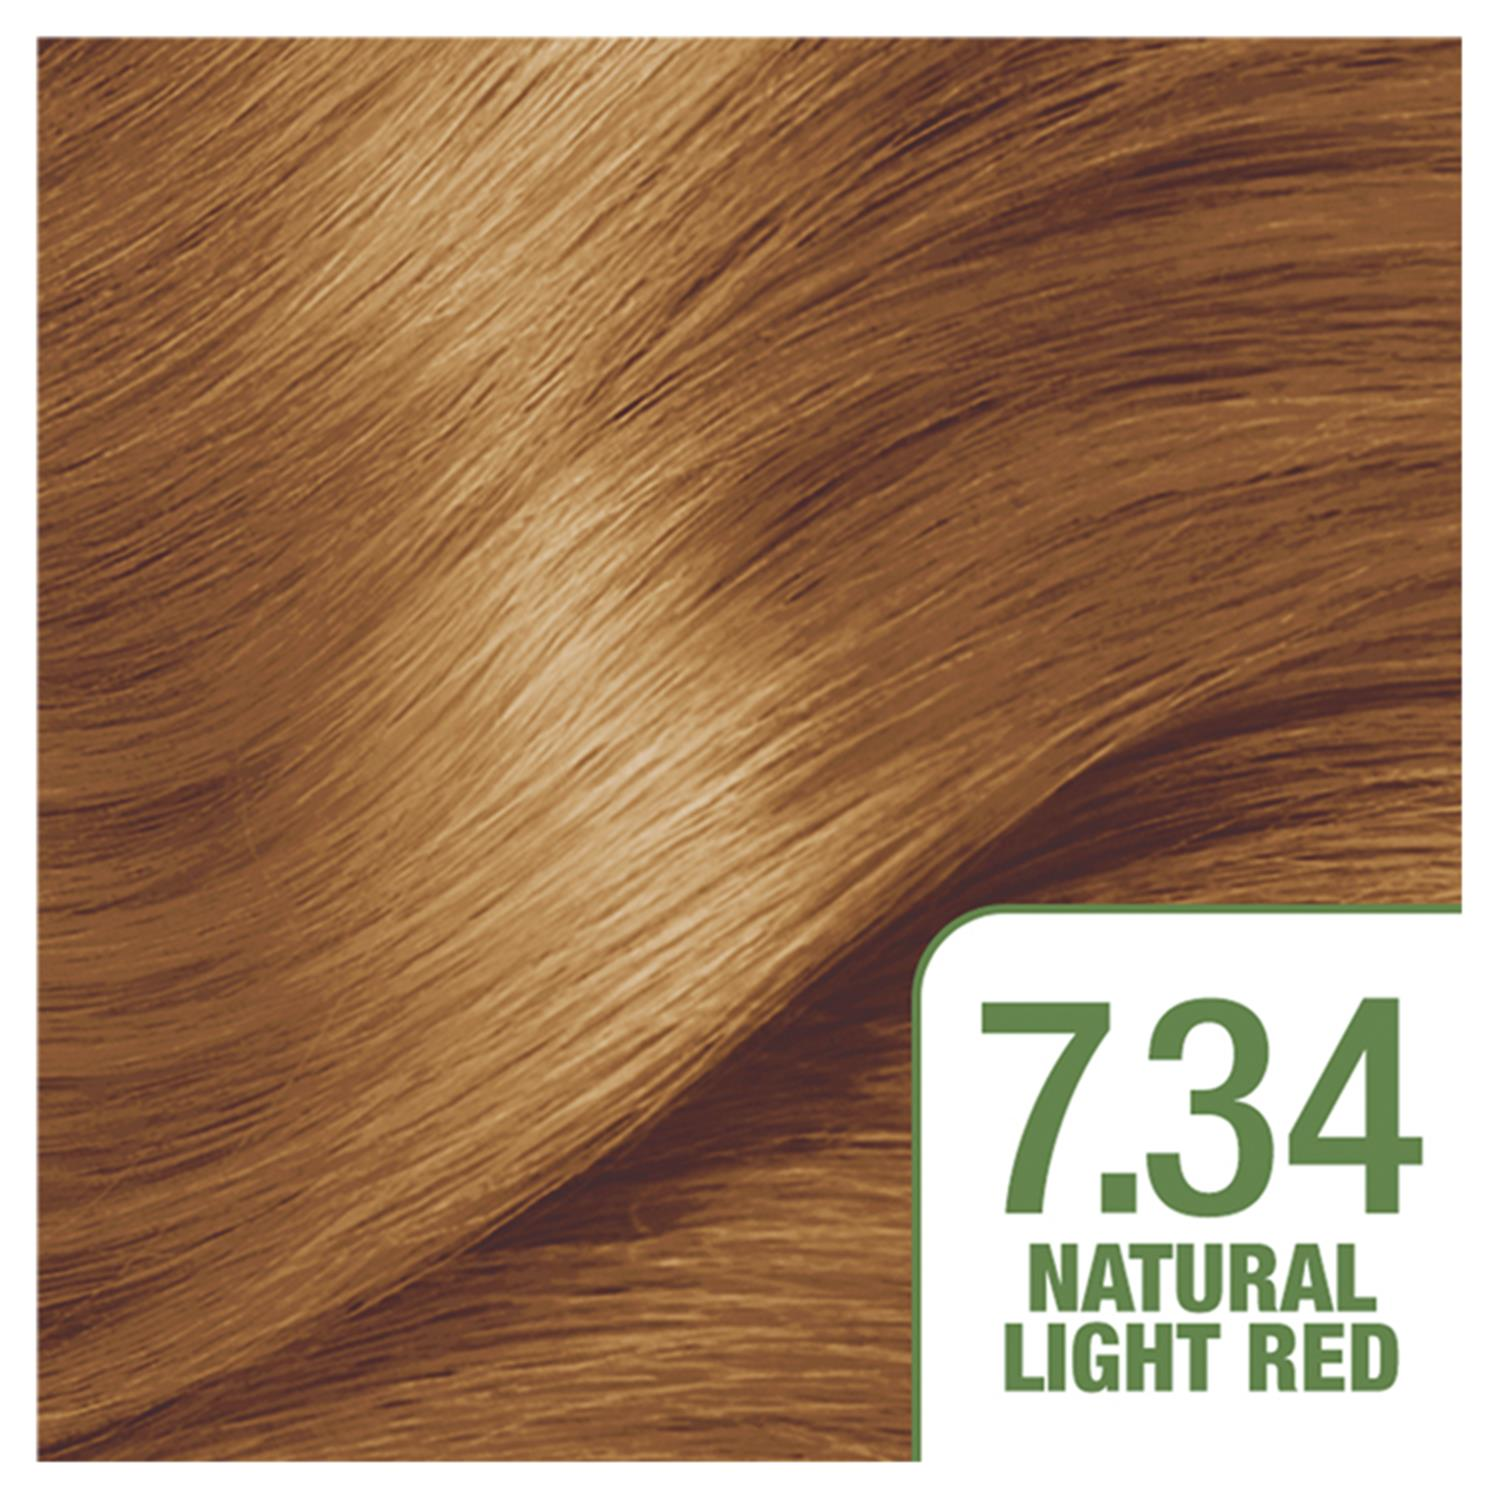 thumbnail 240 - 3 Pack Garnier Nutrisse Permanent Hair Dye With Different Shades